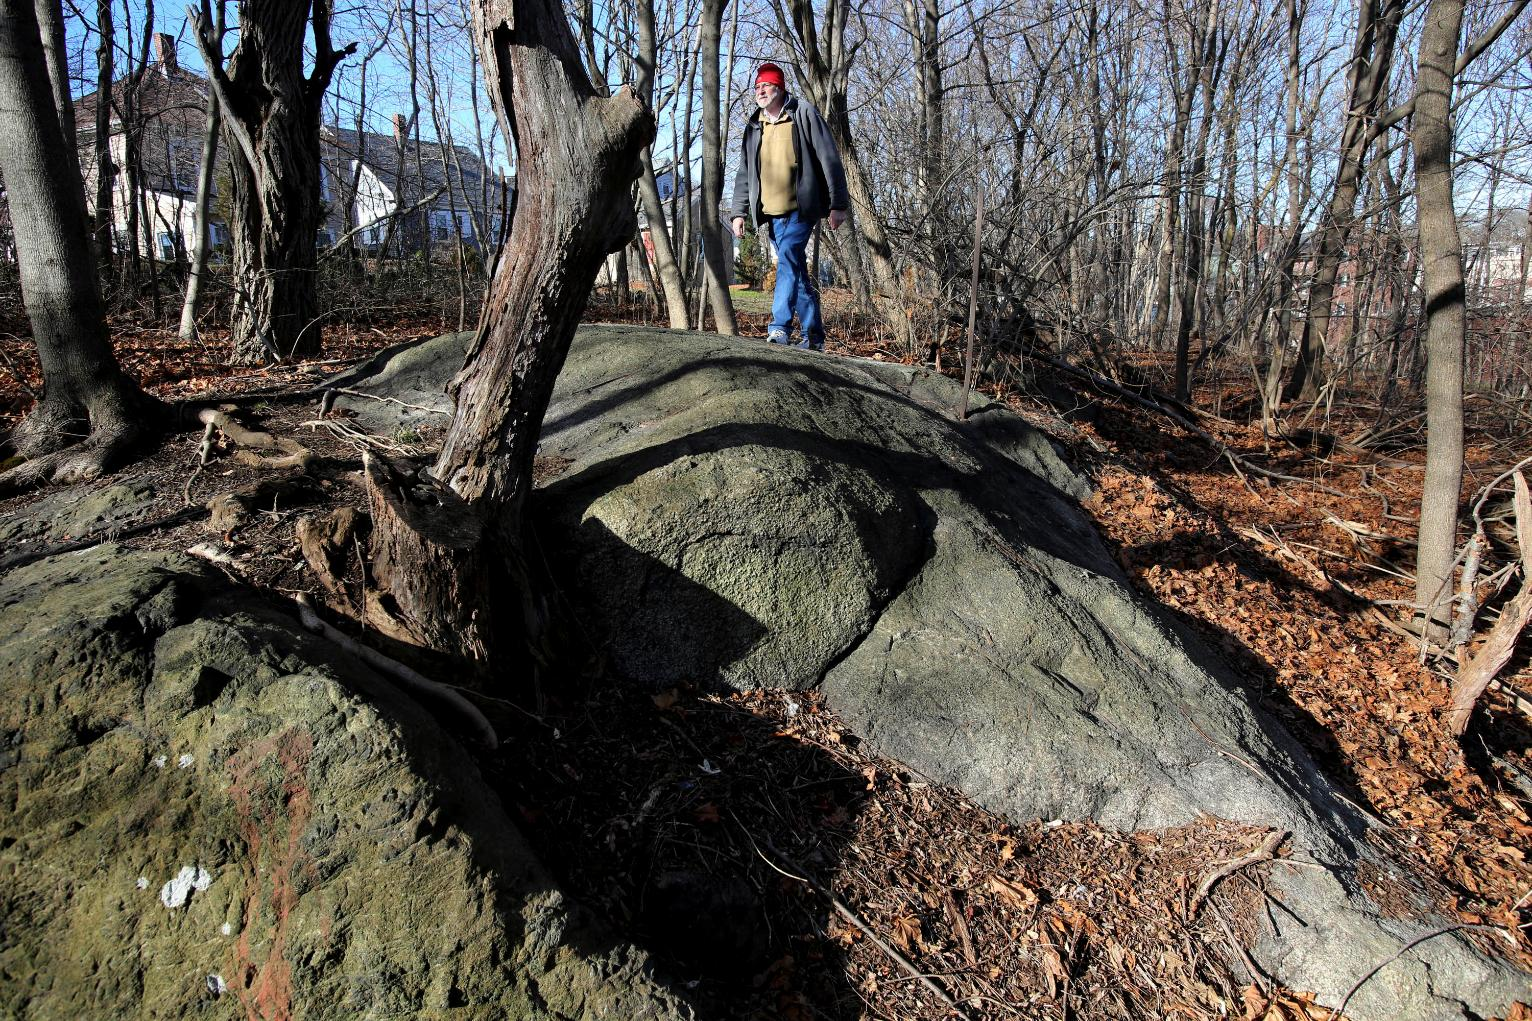 Researchers Confirm Site Of Hangings For Salem Witch